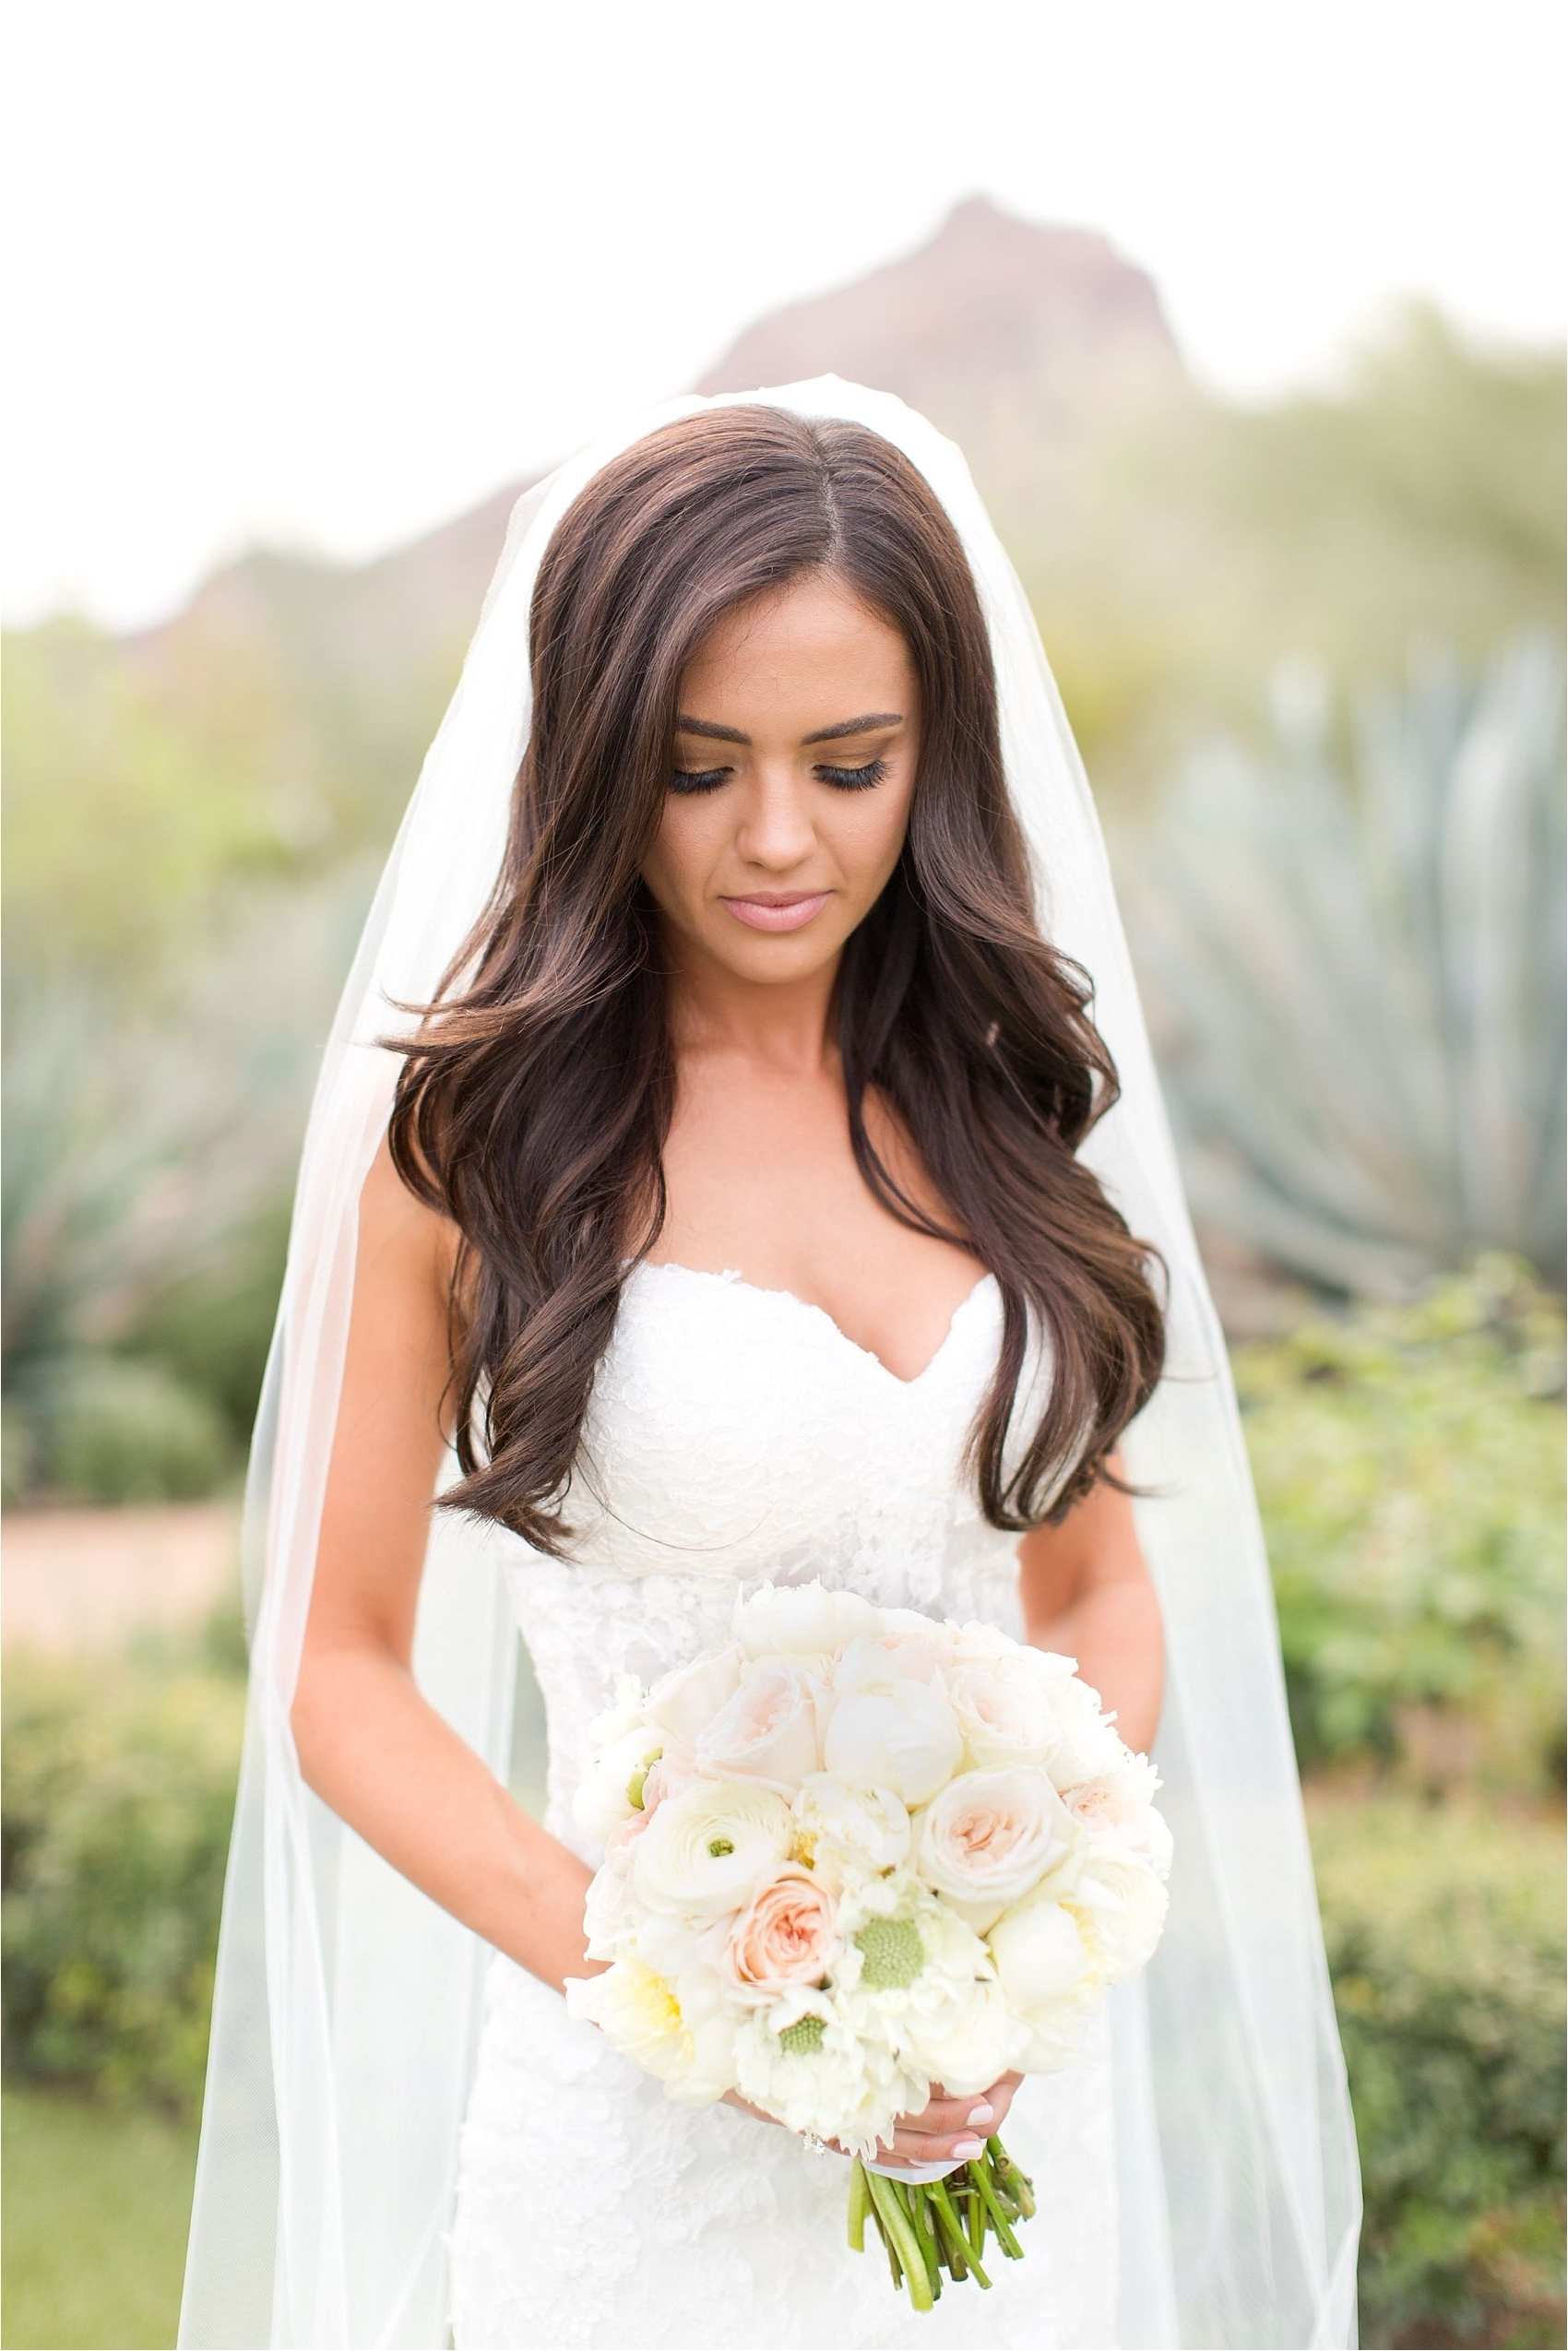 Ideas Long Pulled Back Loose Waves Wedding Hairstyle Curls Hair Half Pertaining To Fashionable Long Hair Down Wedding Hairstyles (View 7 of 15)